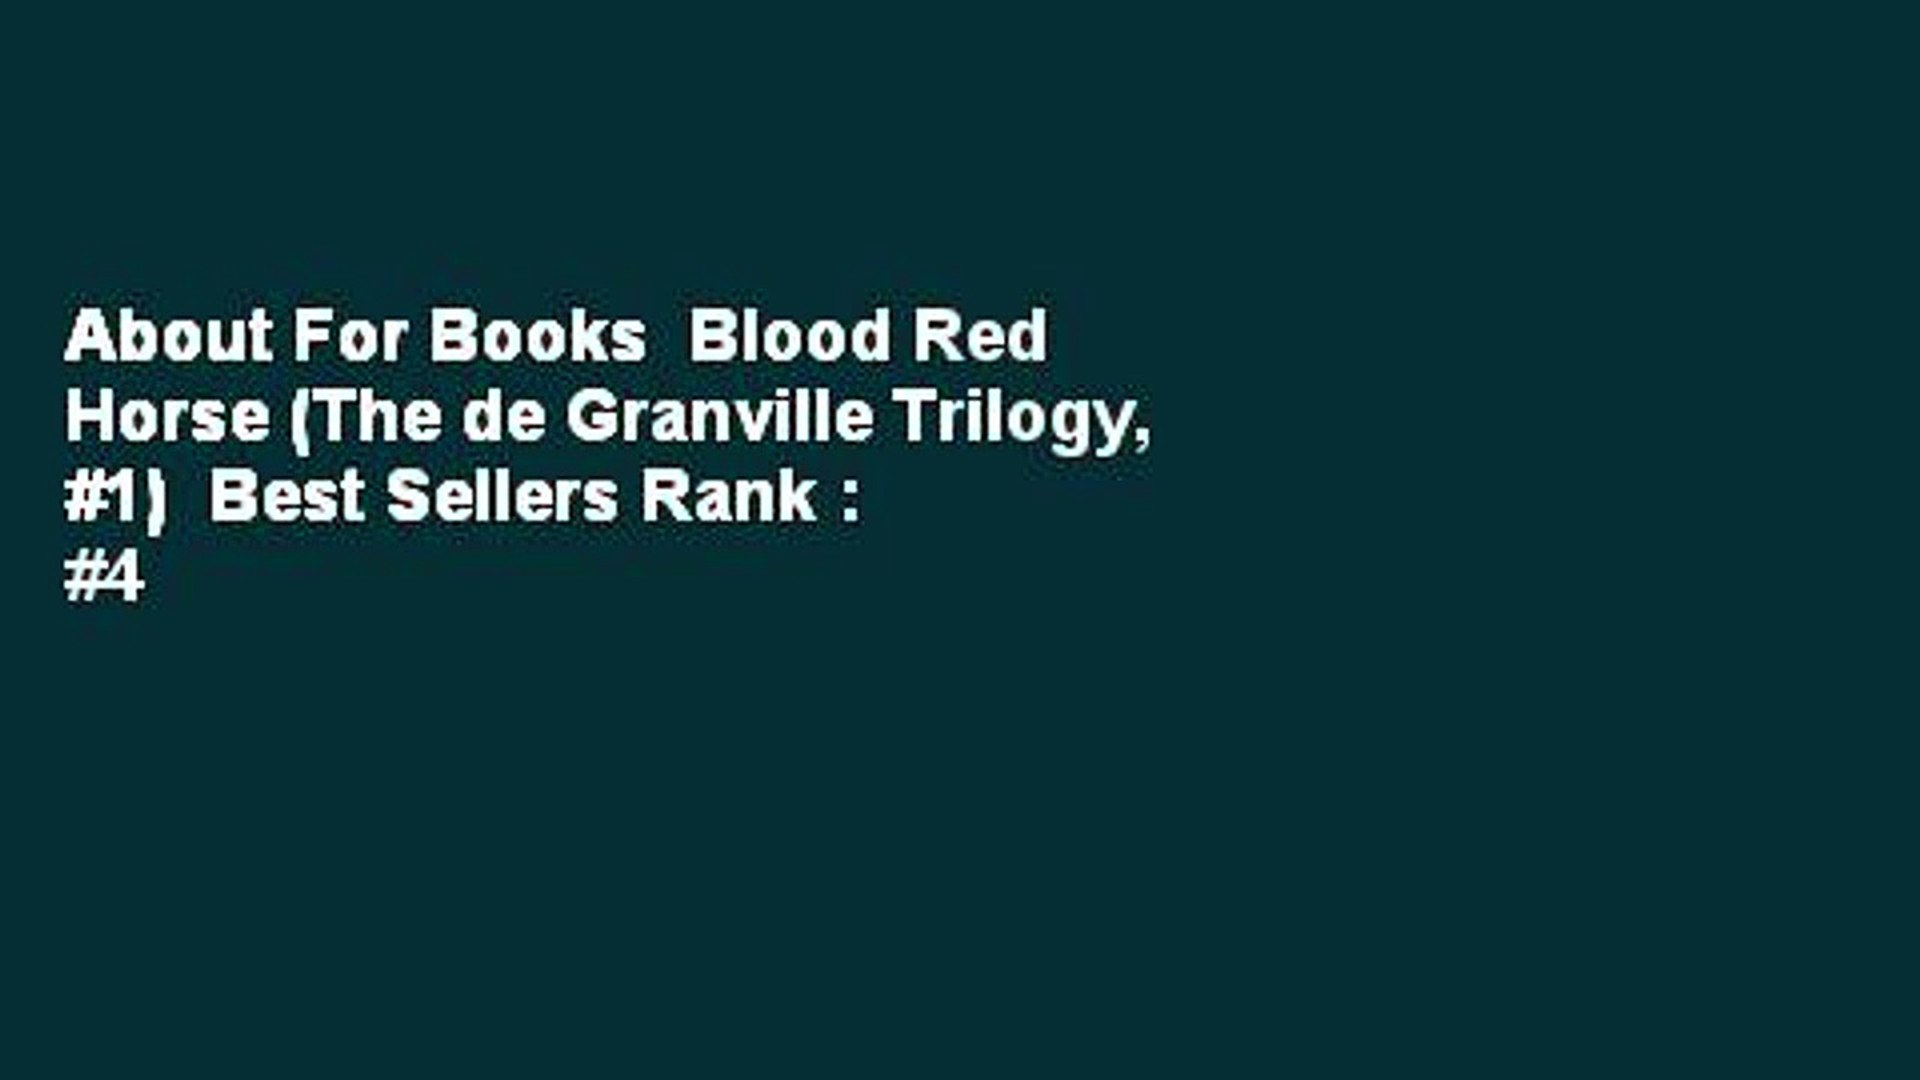 About For Books  Blood Red Horse (The de Granville Trilogy, #1)  Best Sellers Rank : #4